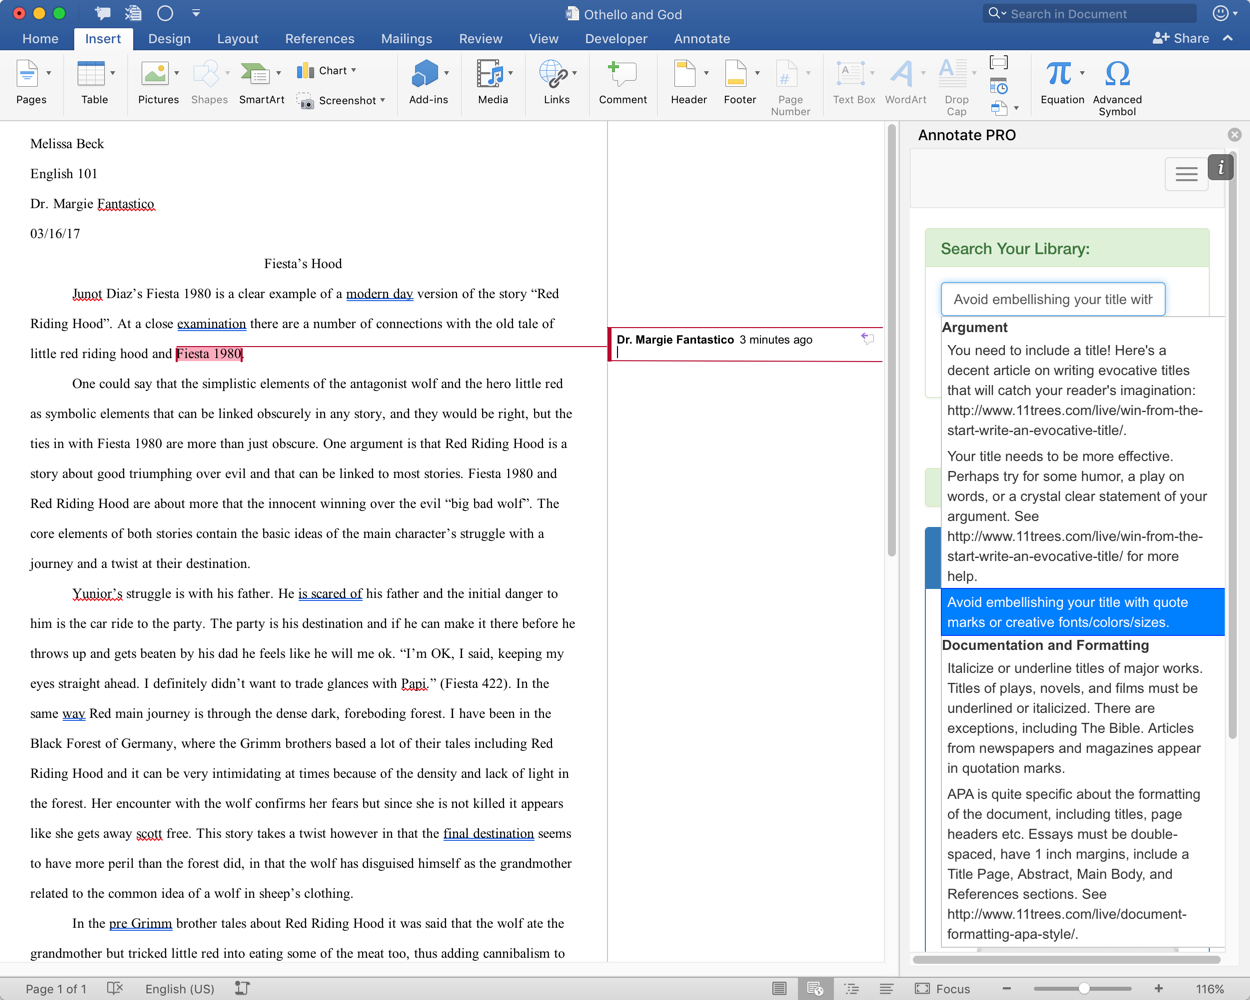 how to add comments in word online